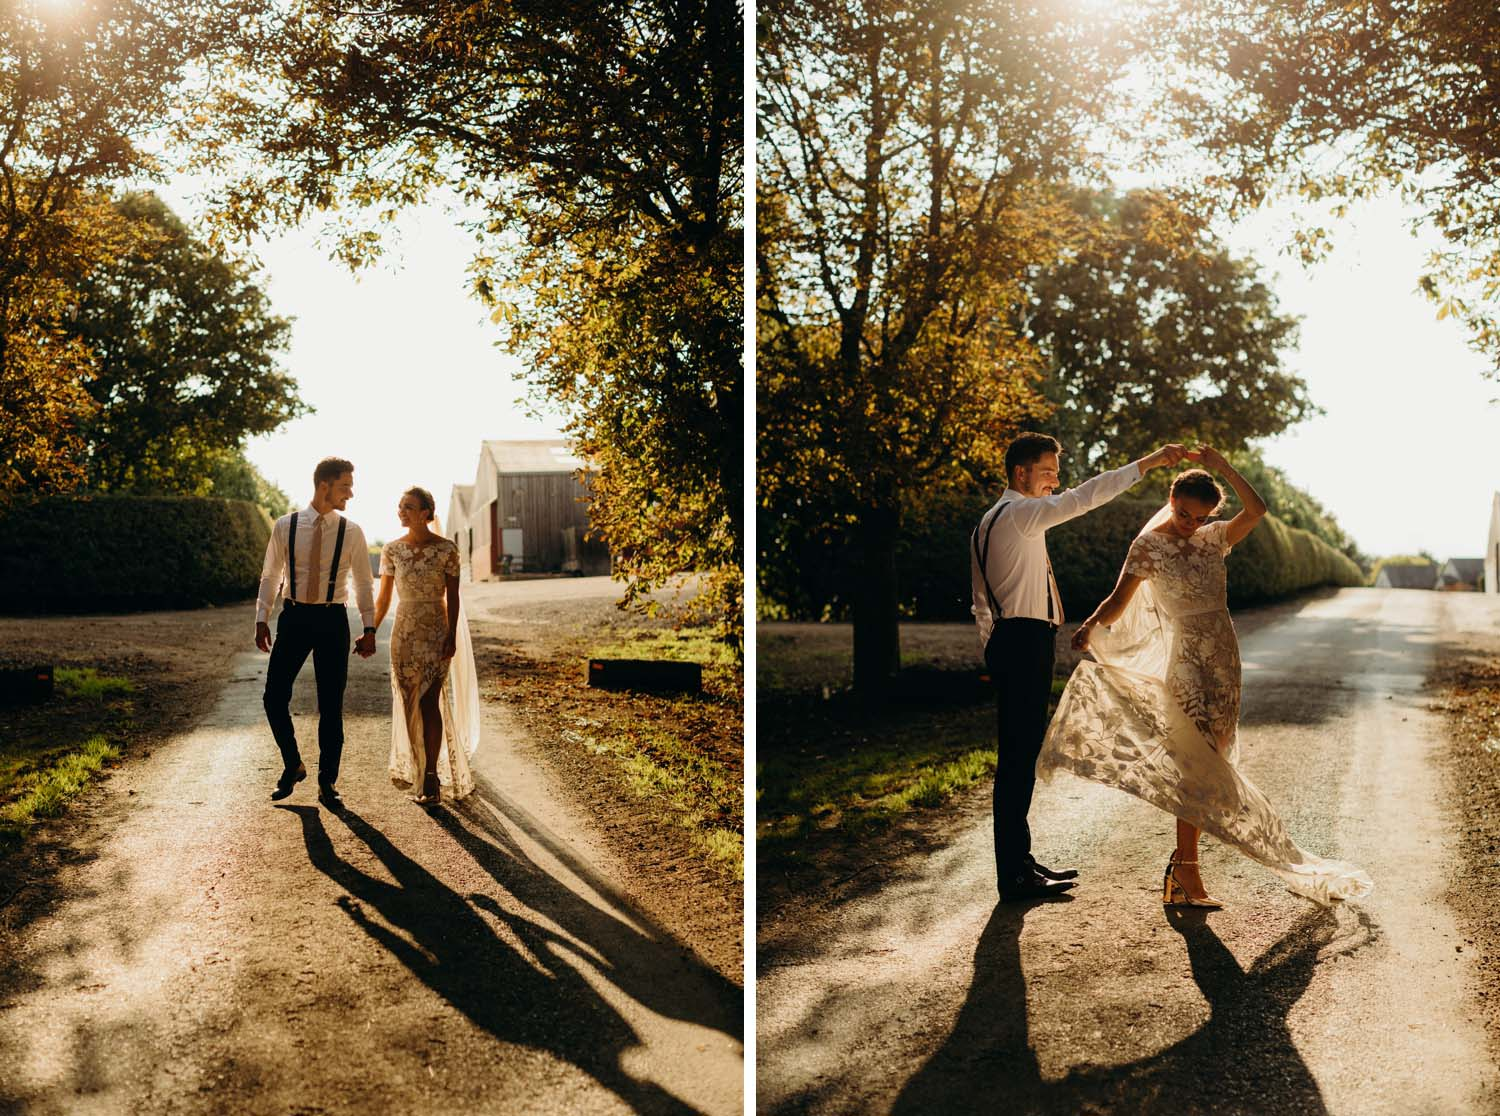 Wedding Portraits back lit in summer sun